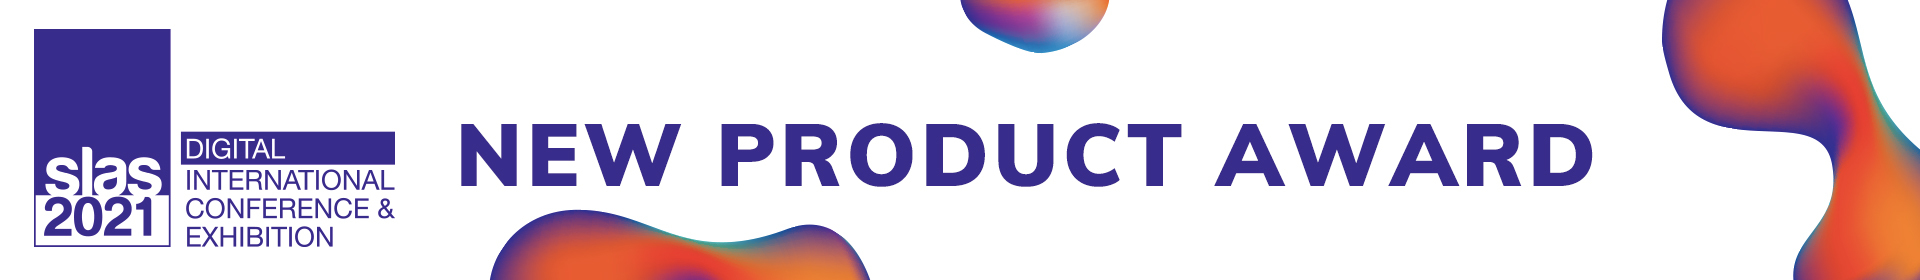 2021 New Product Award Event Banner